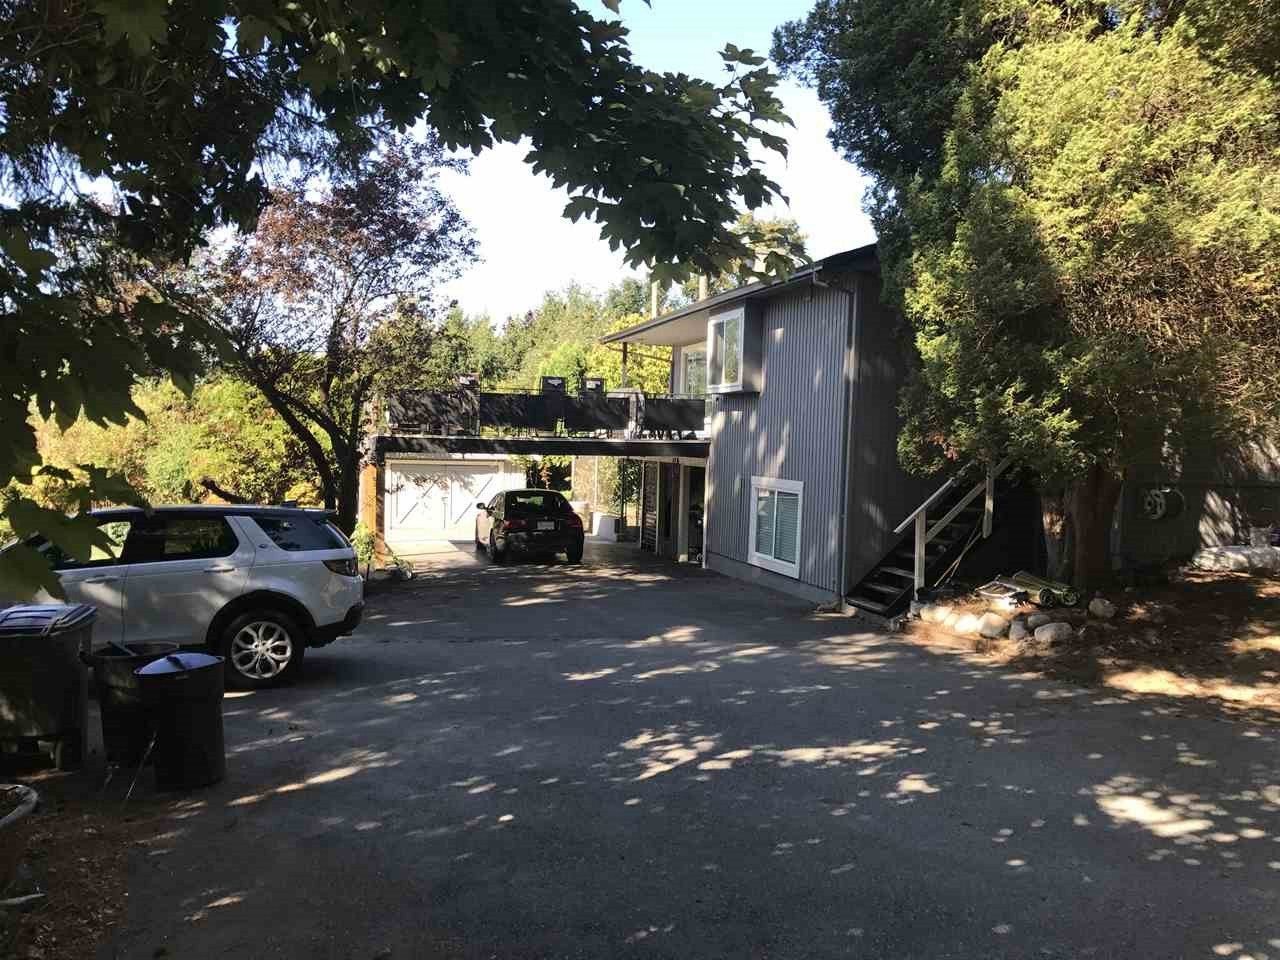 INVESTOR ALERT !!!This 1.183 acre property has potential for various lots. This land comes with a 3,184 sq.ft home. A seperate garage and a studio house. There is easy access to #10 highway very close to Kwantlen College, Martha Currie Elementary and Lord Tweedsmuir Secondary. Minutes away from both downtown Cloverdale and Langley, close to Cloverdale fairgrounds, transit and amenities.